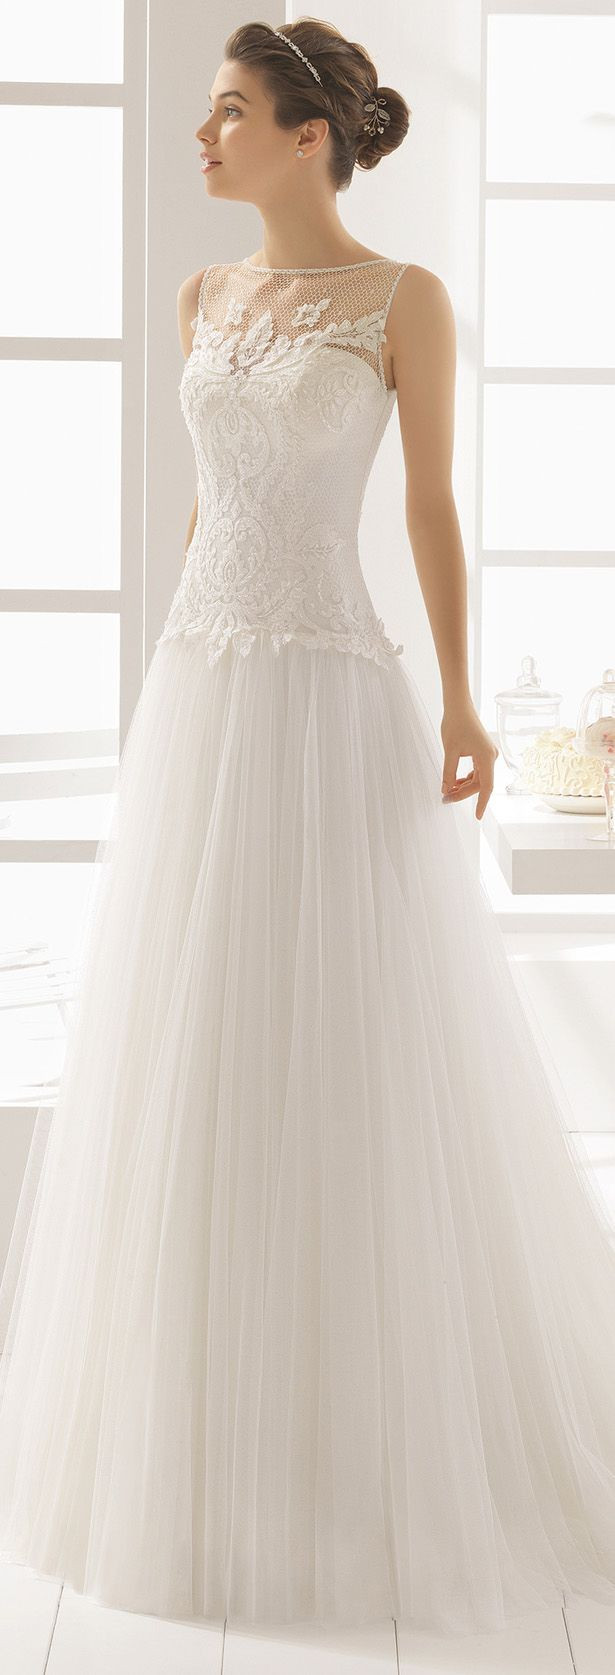 Wedding Dress Patterns Fresh 1000 Images About Wedding Dresses On Pinterest Of Incredible 44 Images Wedding Dress Patterns